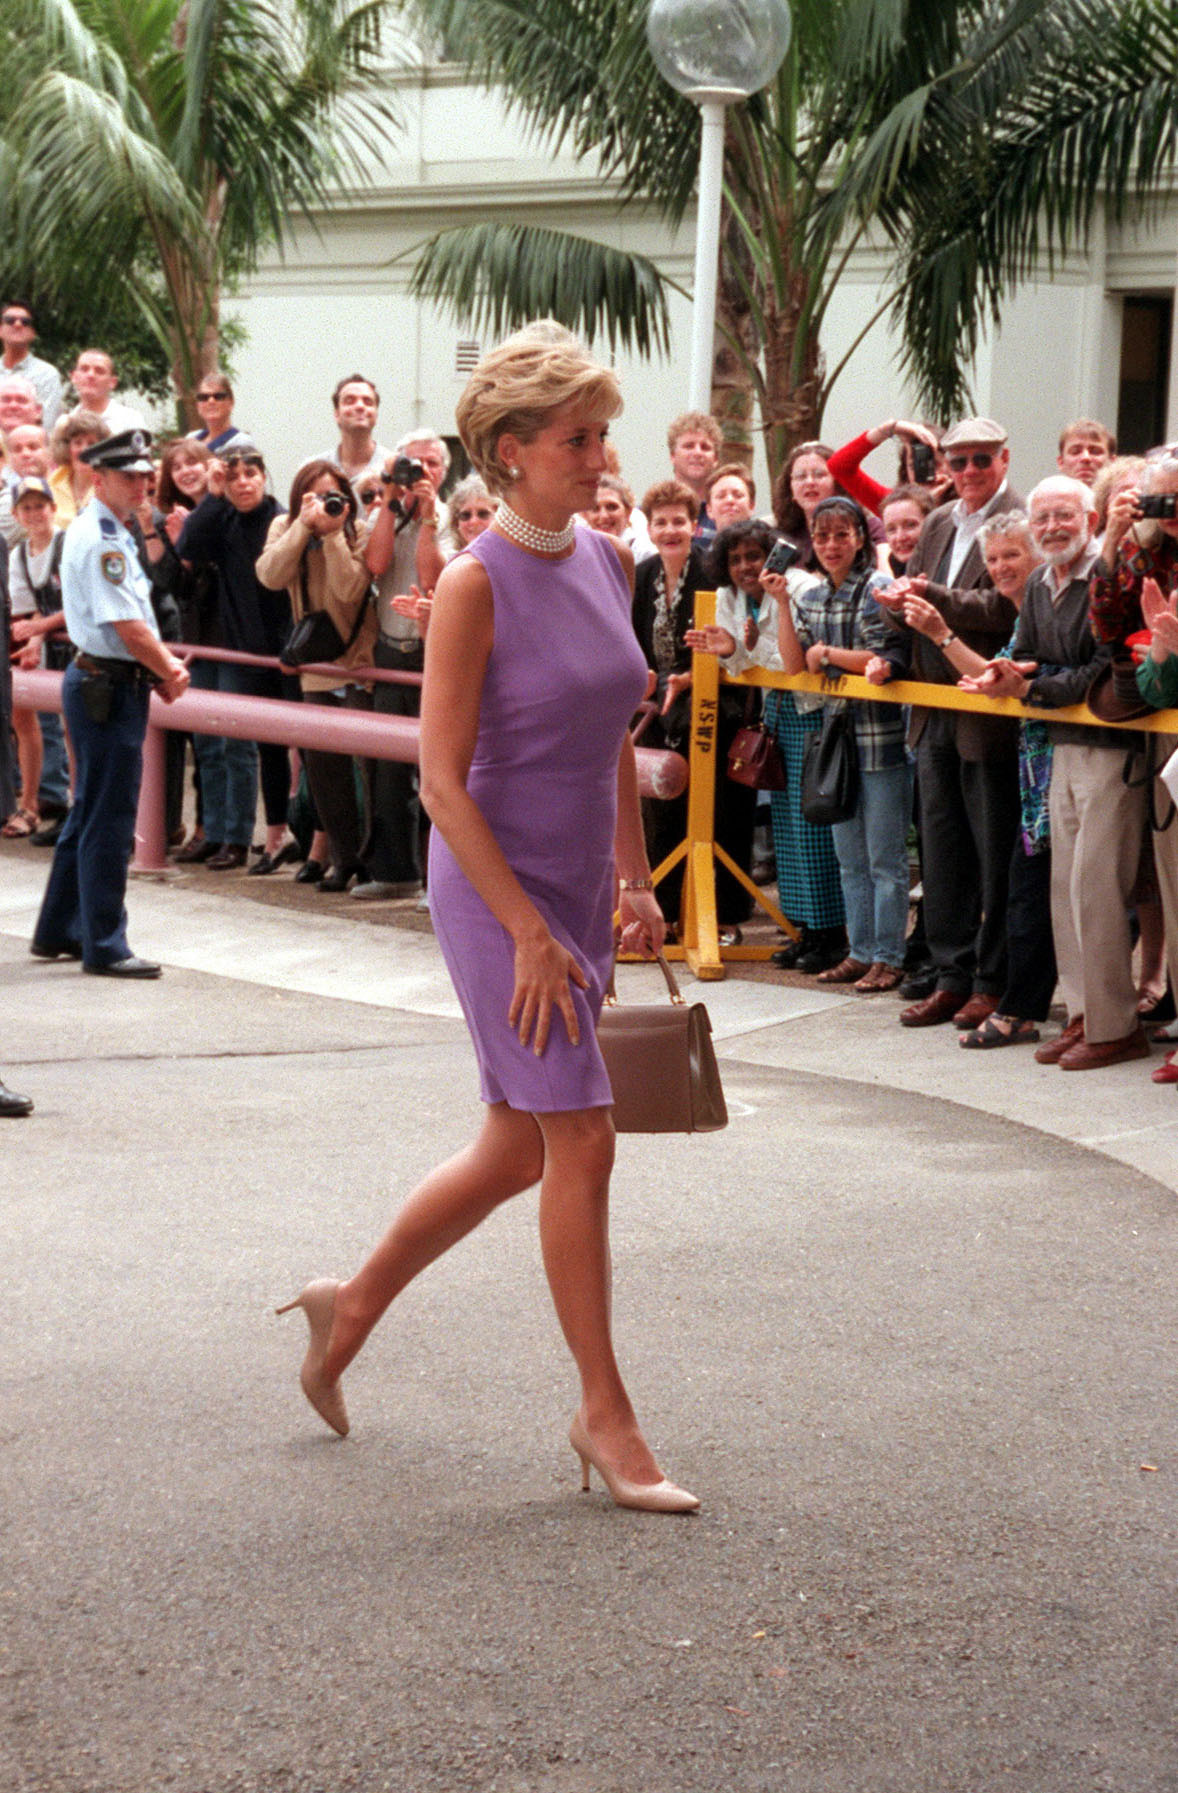 NOV1996 1996 - PRINCESS DIANA AT THE VICTOR CHANG CARDIAC RESEARCH INSTITUTE , SYDNEY,  AUSTRALIA. (Photo by Patrick Riviere/Getty Images)